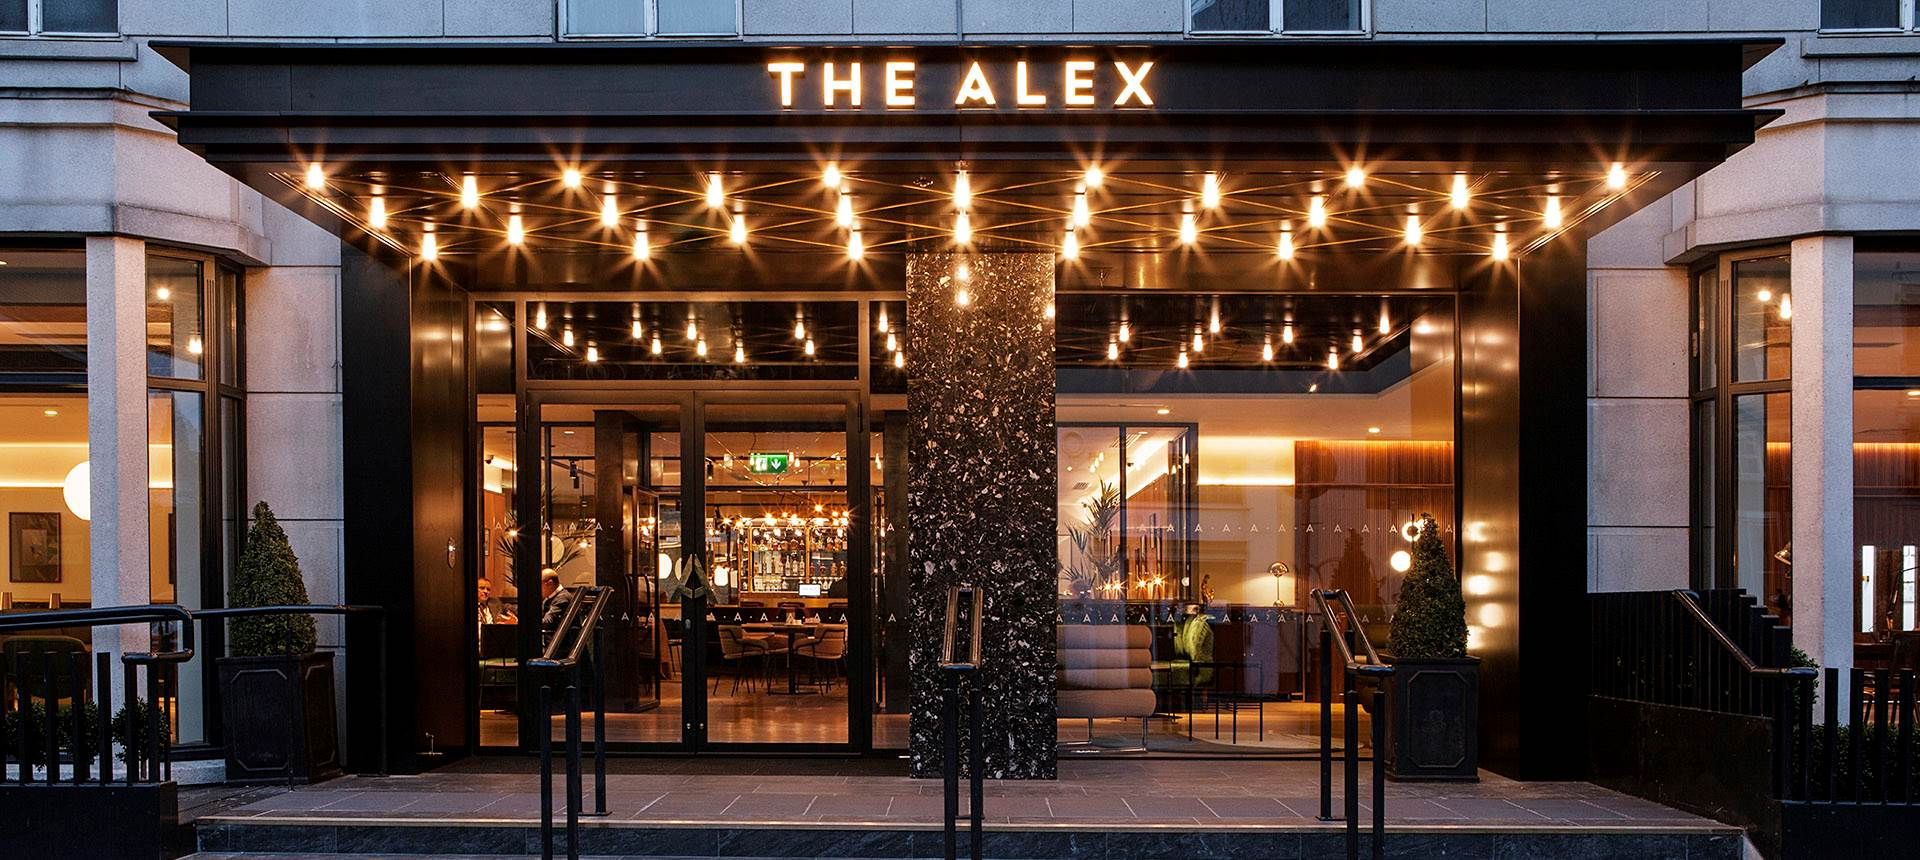 The Alex in Dublin